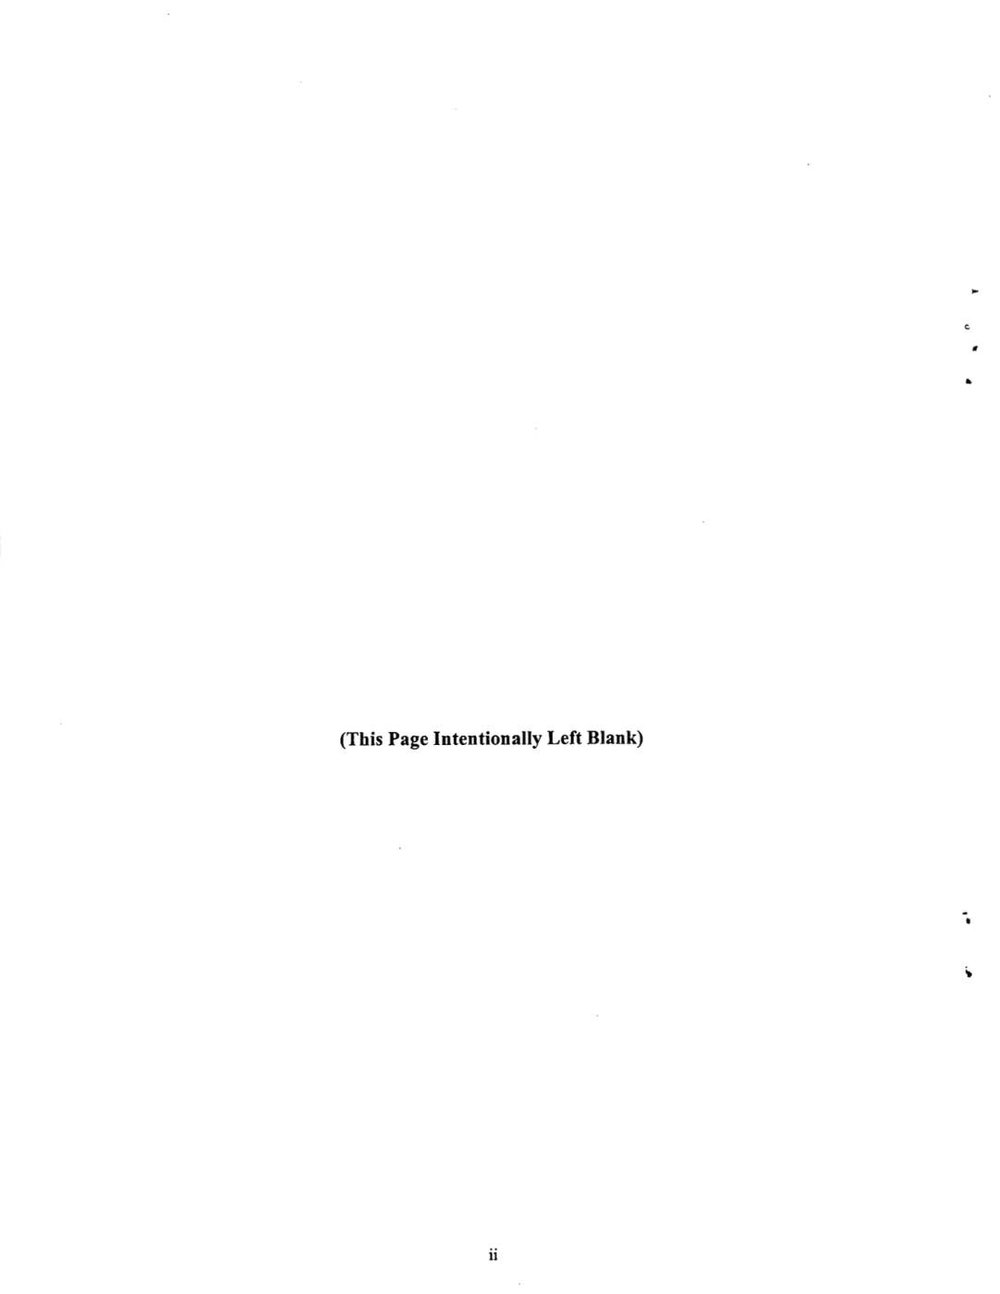 11_This Page Intentionally Left Blank #1.jpg